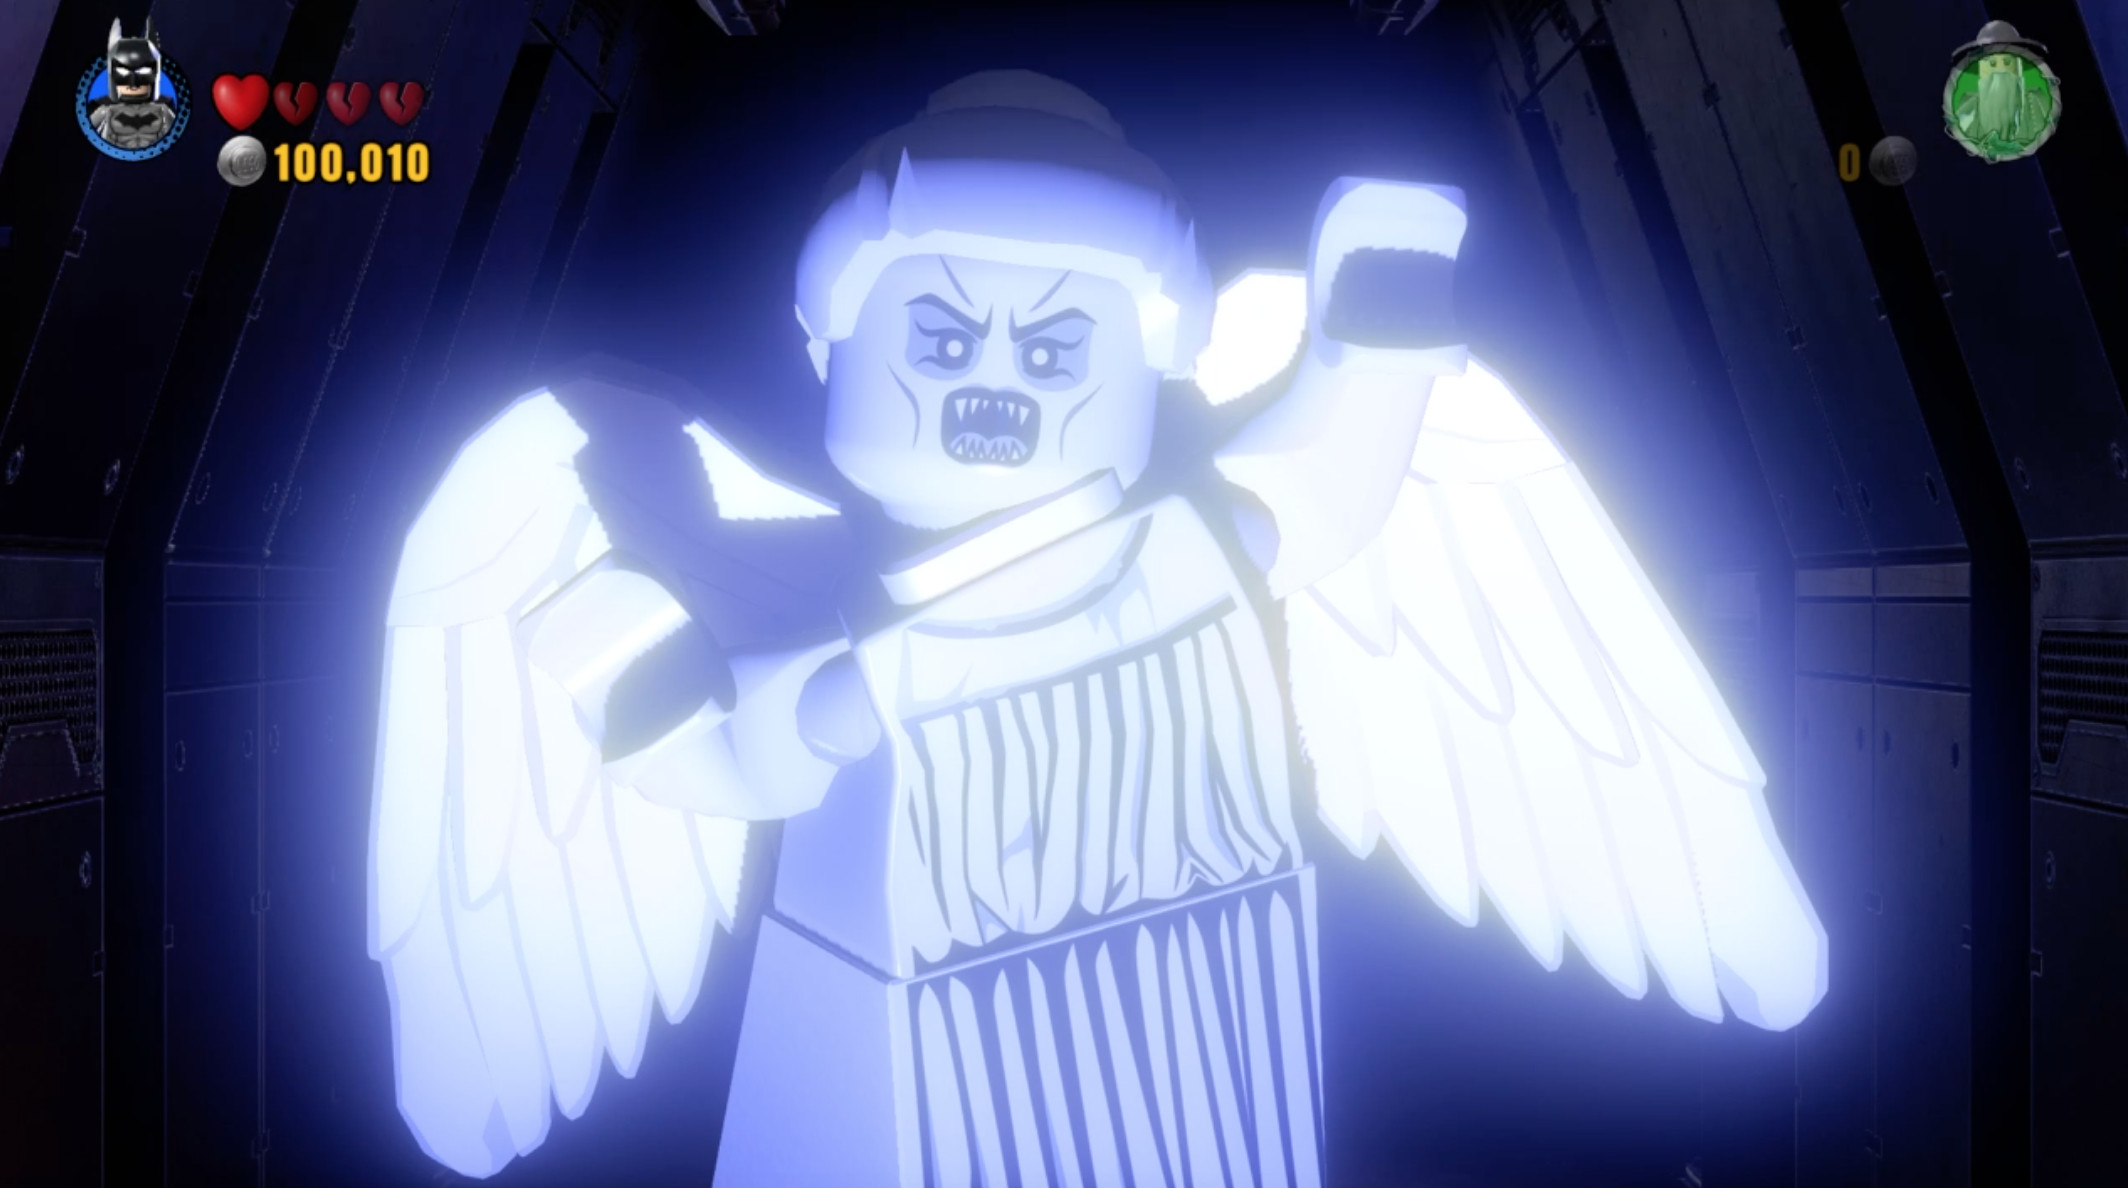 2128x1188 Weeping angel lego dimensions